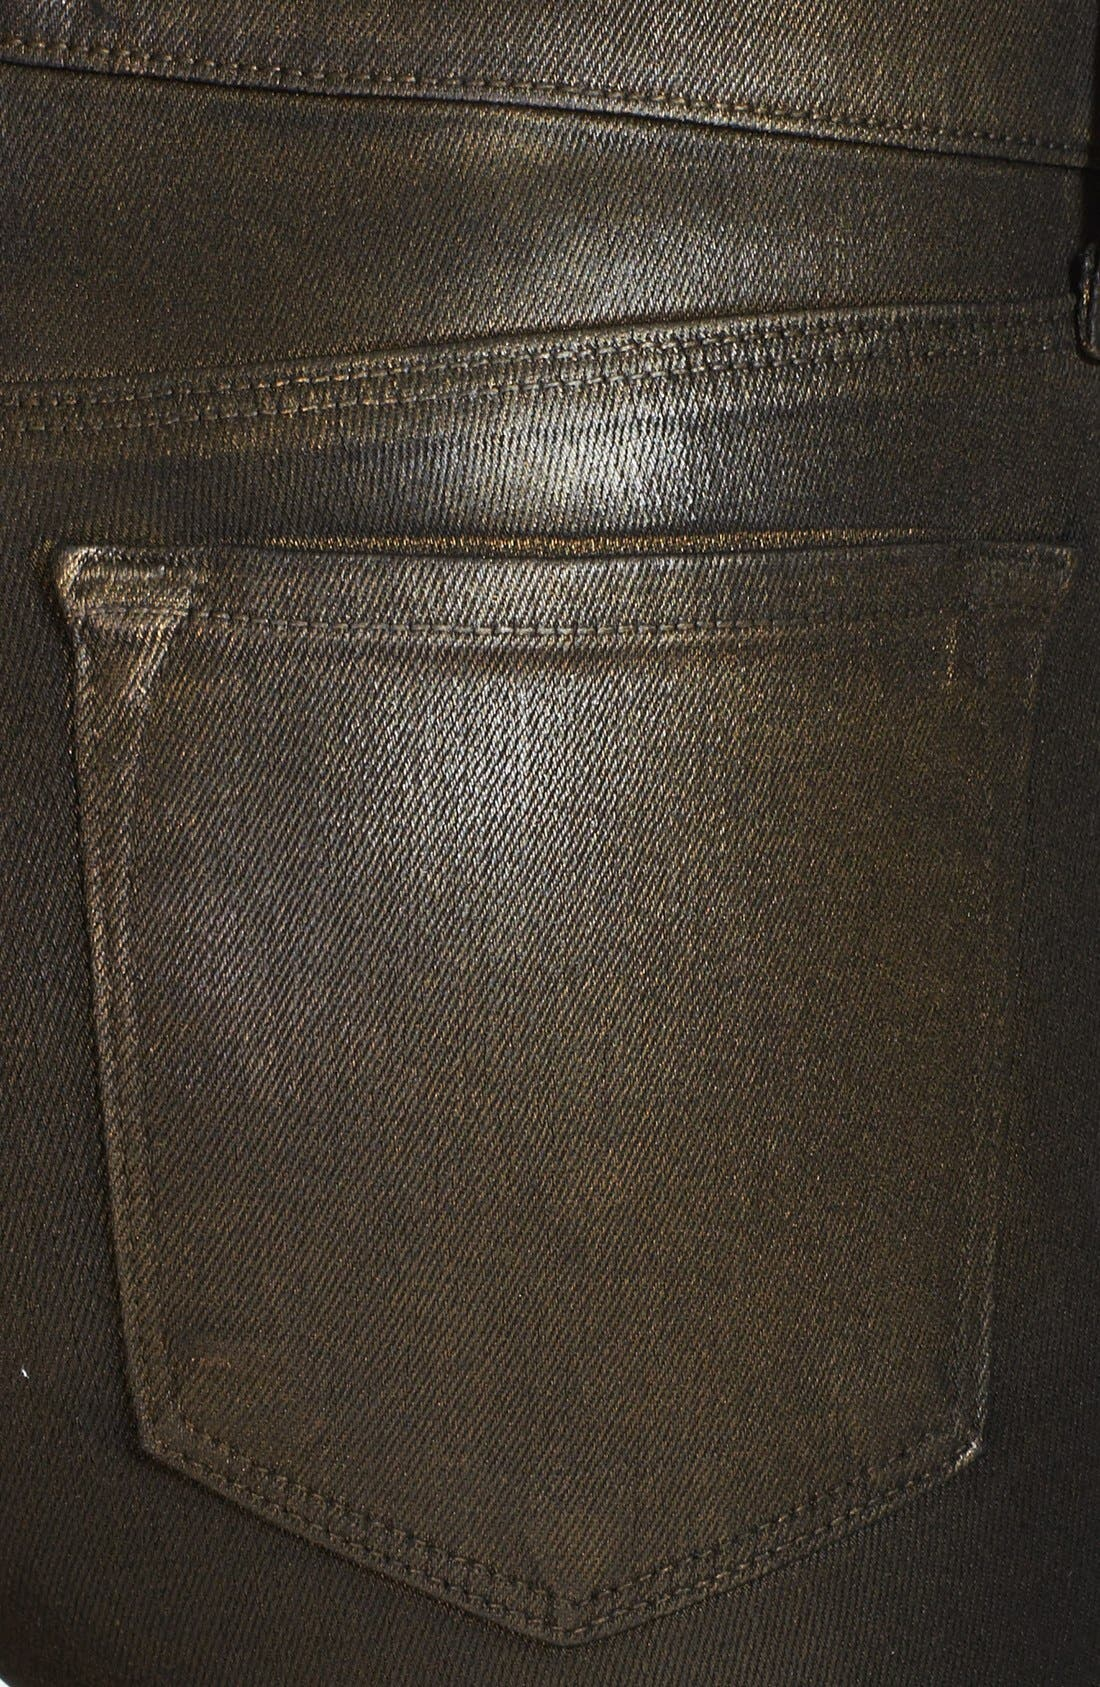 Alternate Image 3  - J Brand '620' Overdyed Skinny Leg Jeans (Diffused Gold)